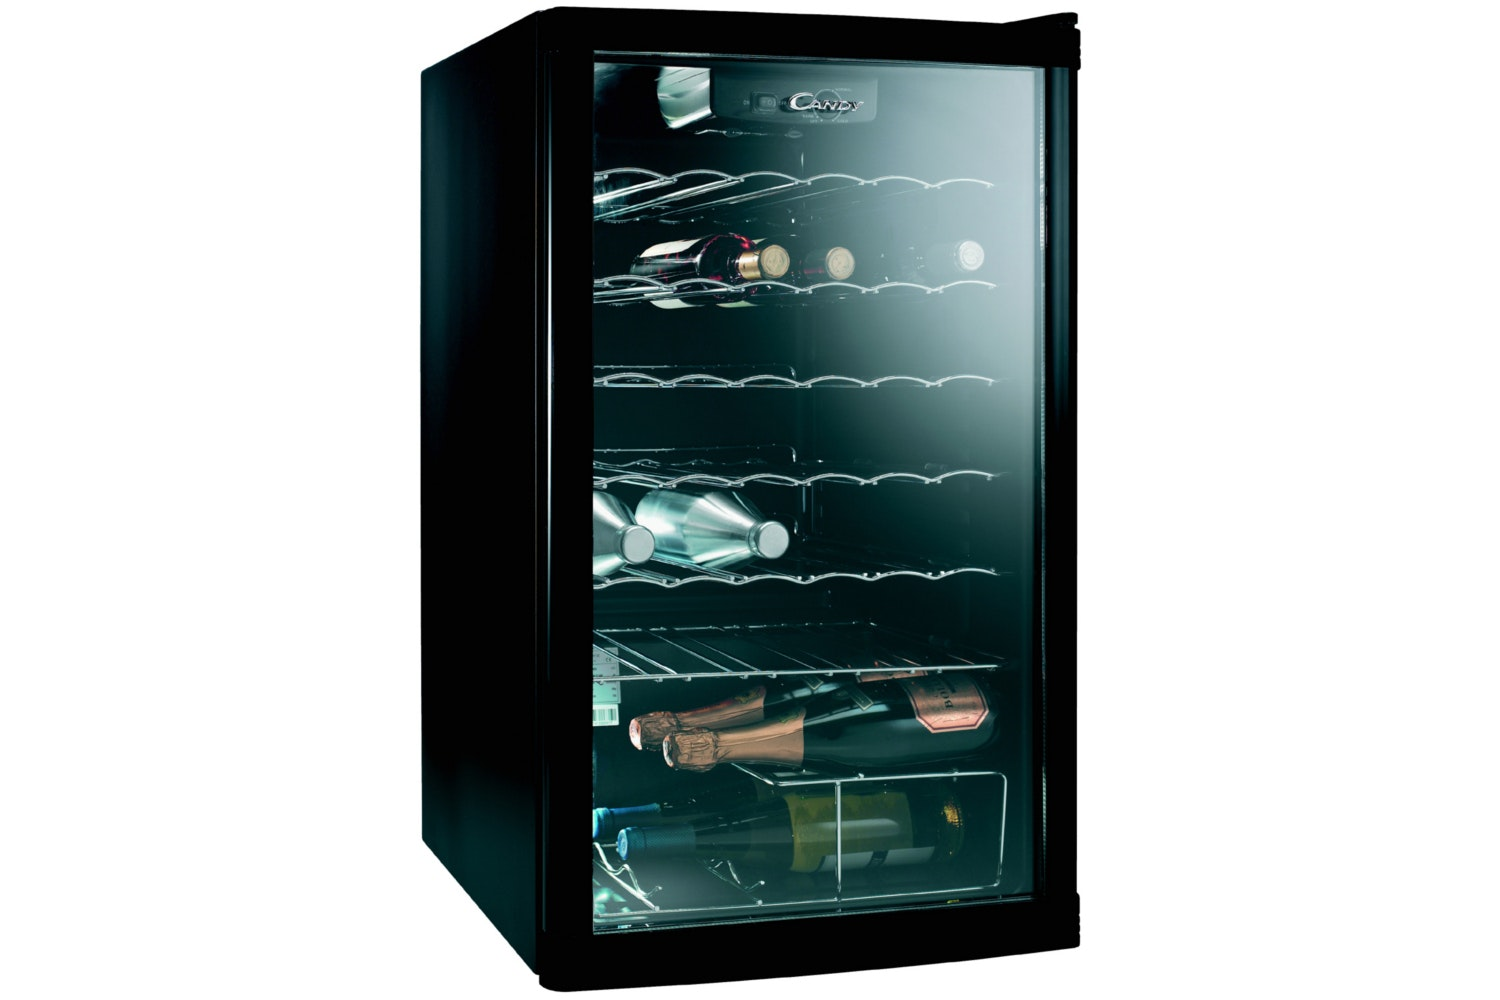 Candy Freestanding Wine Cooler | CCV150B